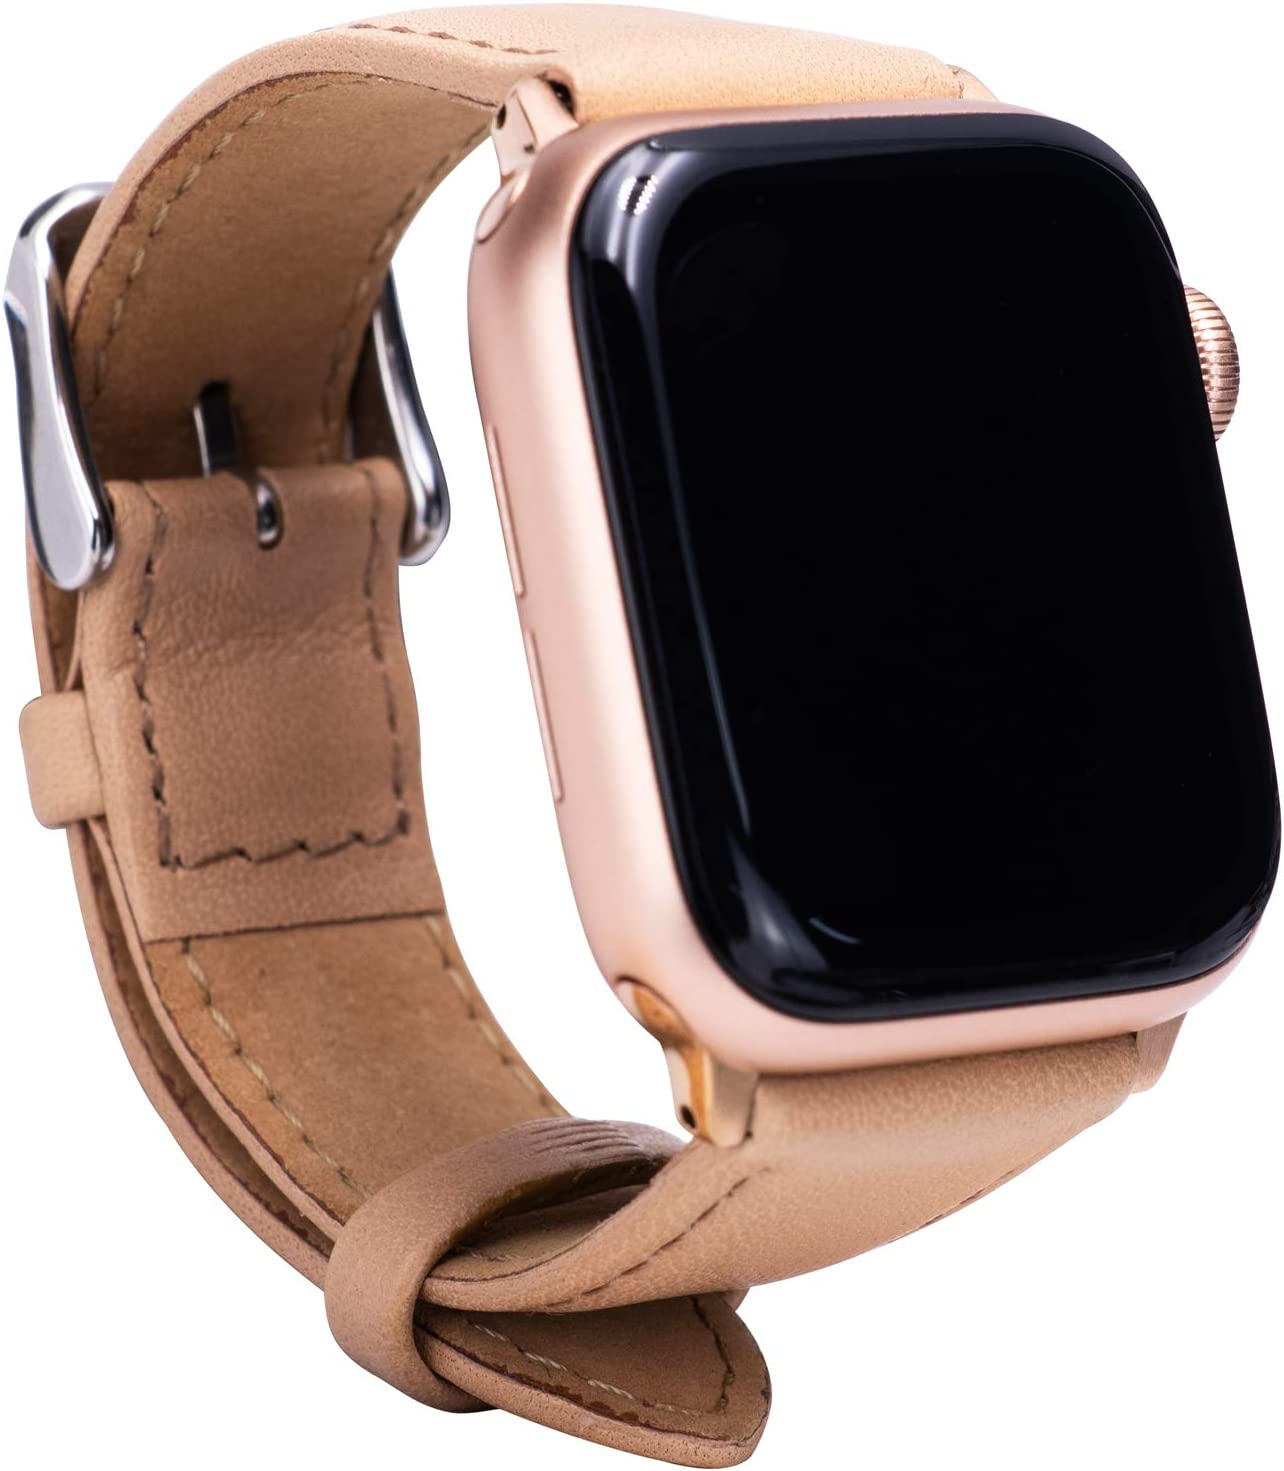 Leather Bands Compatible with Apple Watch 38mm 40mm Top Grain Leather Wristband Khaki Leather Vintage Strap with Rose Gold Buckle iWatch Series 6/5/4/3/2/1